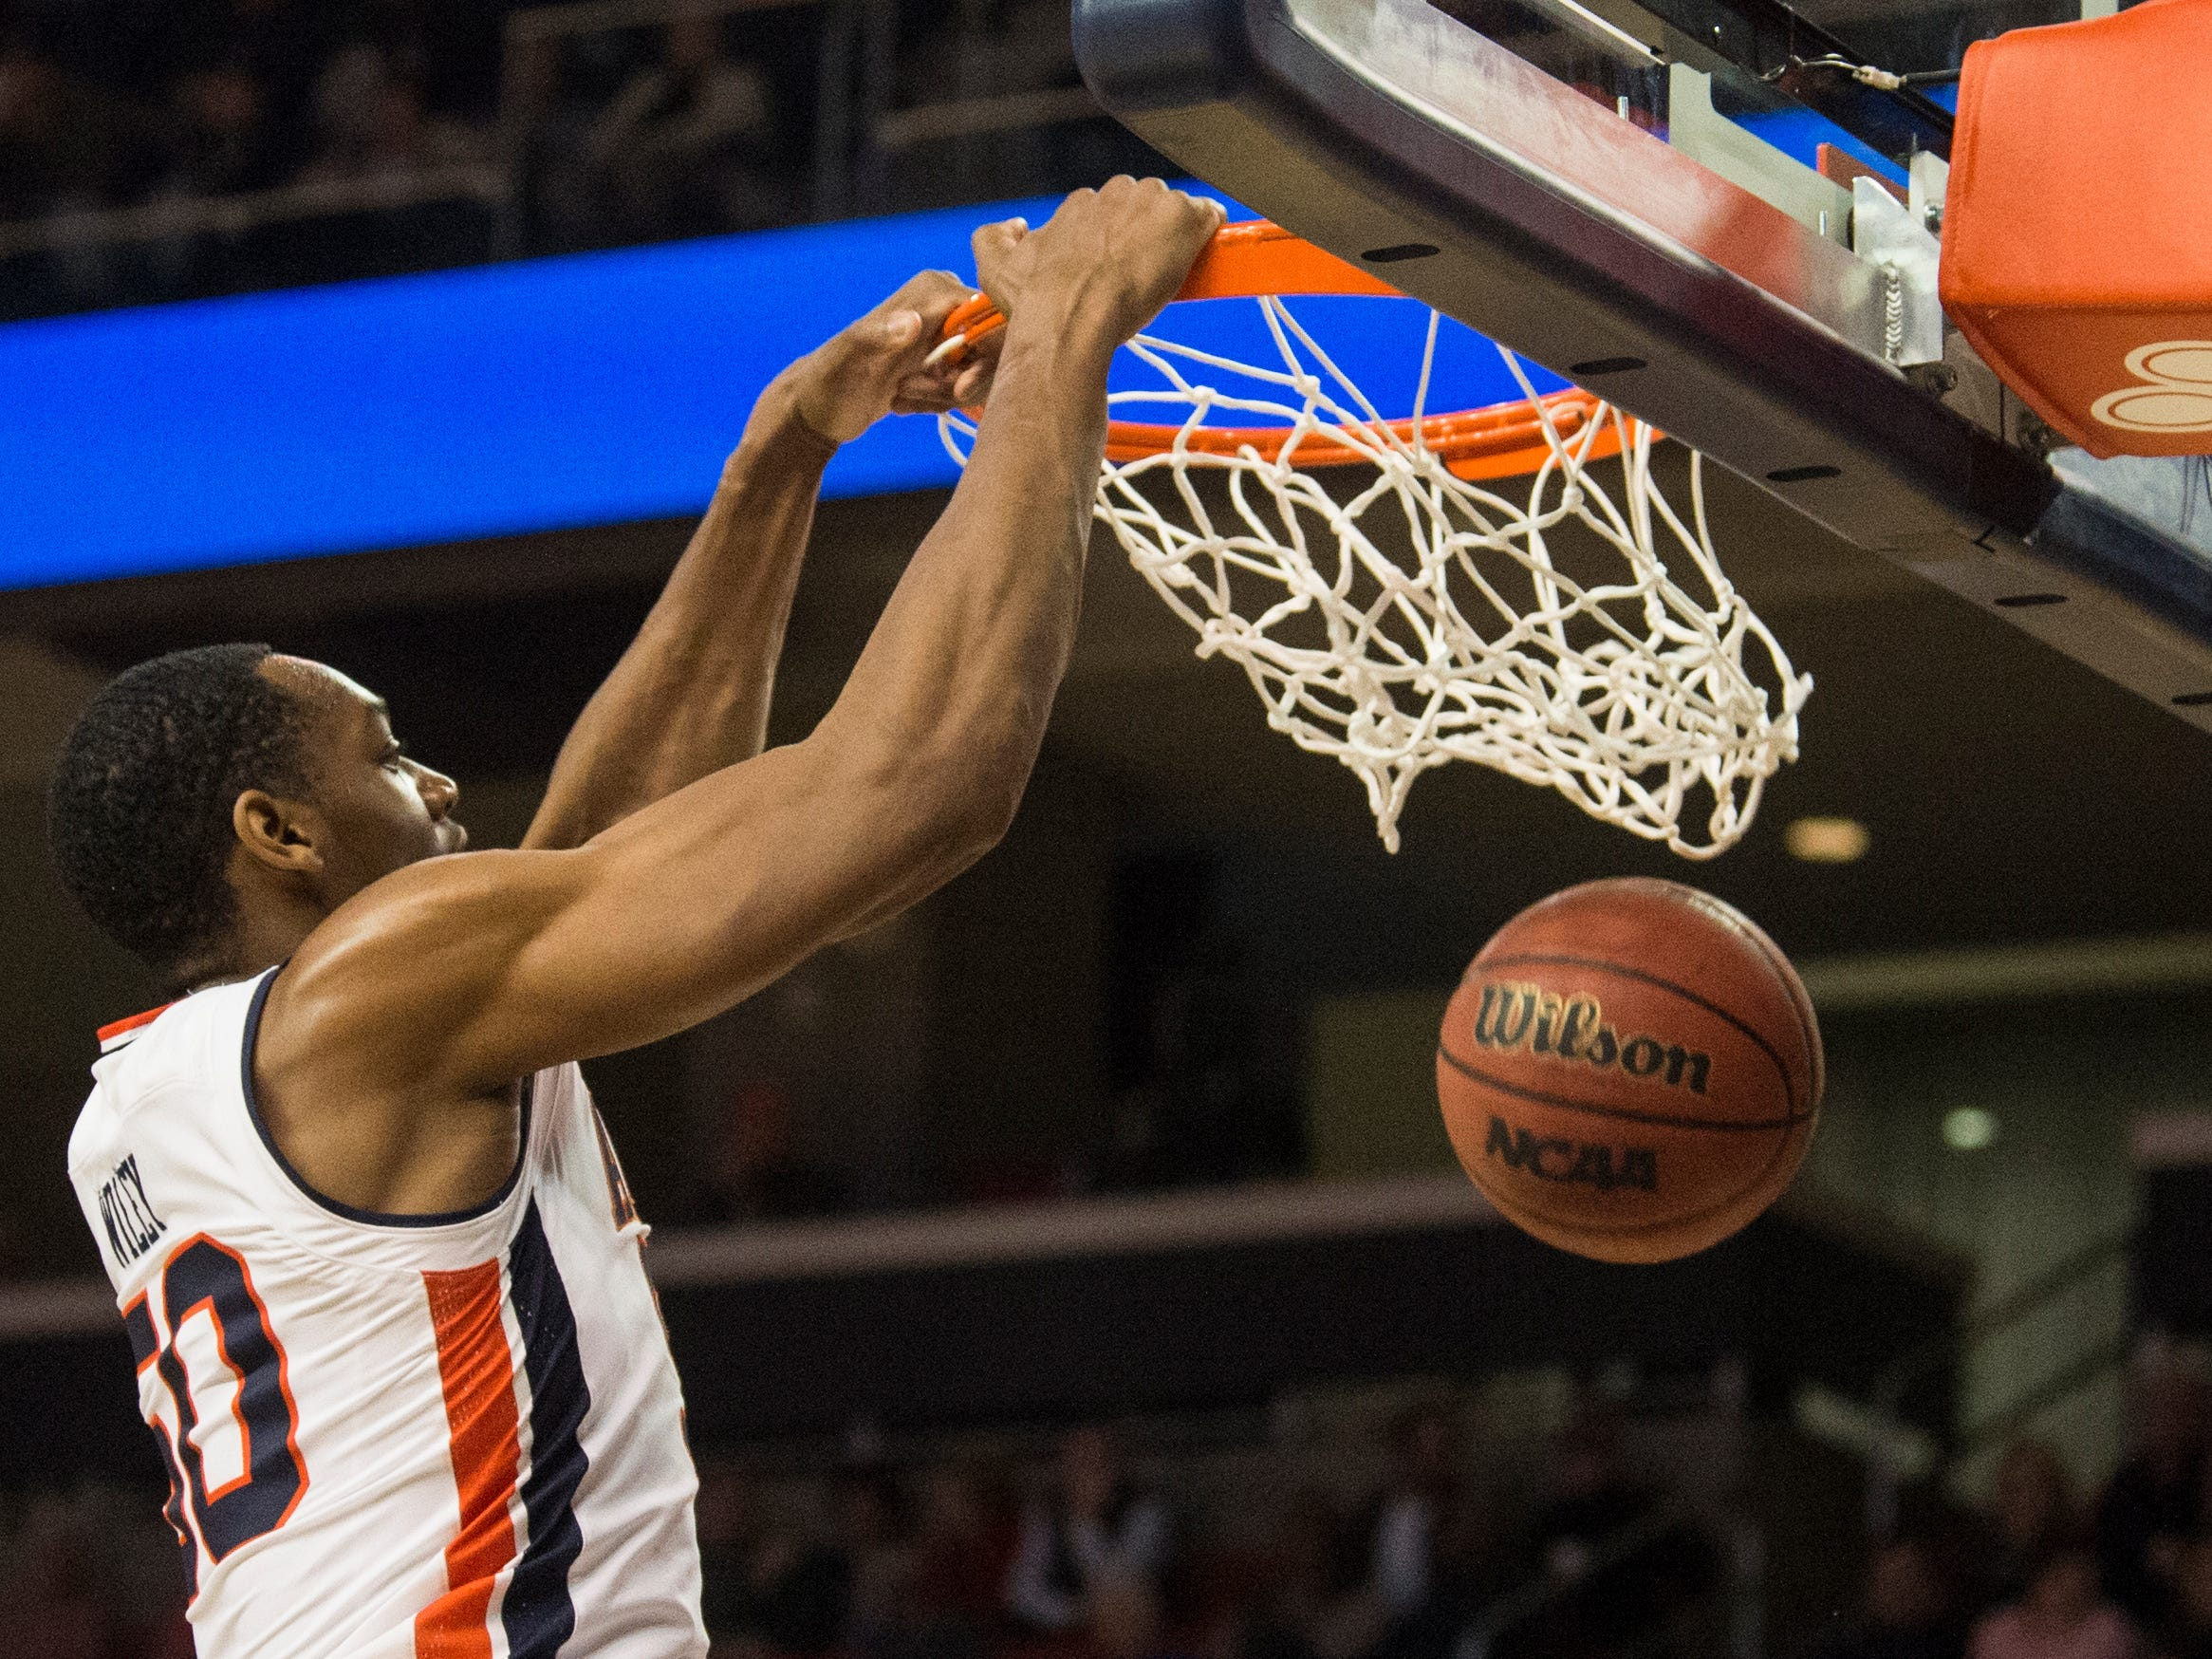 Auburn center Austin Wiley (50) dunks the ball against Saint Peter's at Auburn Arena in Auburn, Ala., on Wednesday, Nov. 28, 2018. Auburn defeated Saint Peter's 99-49.